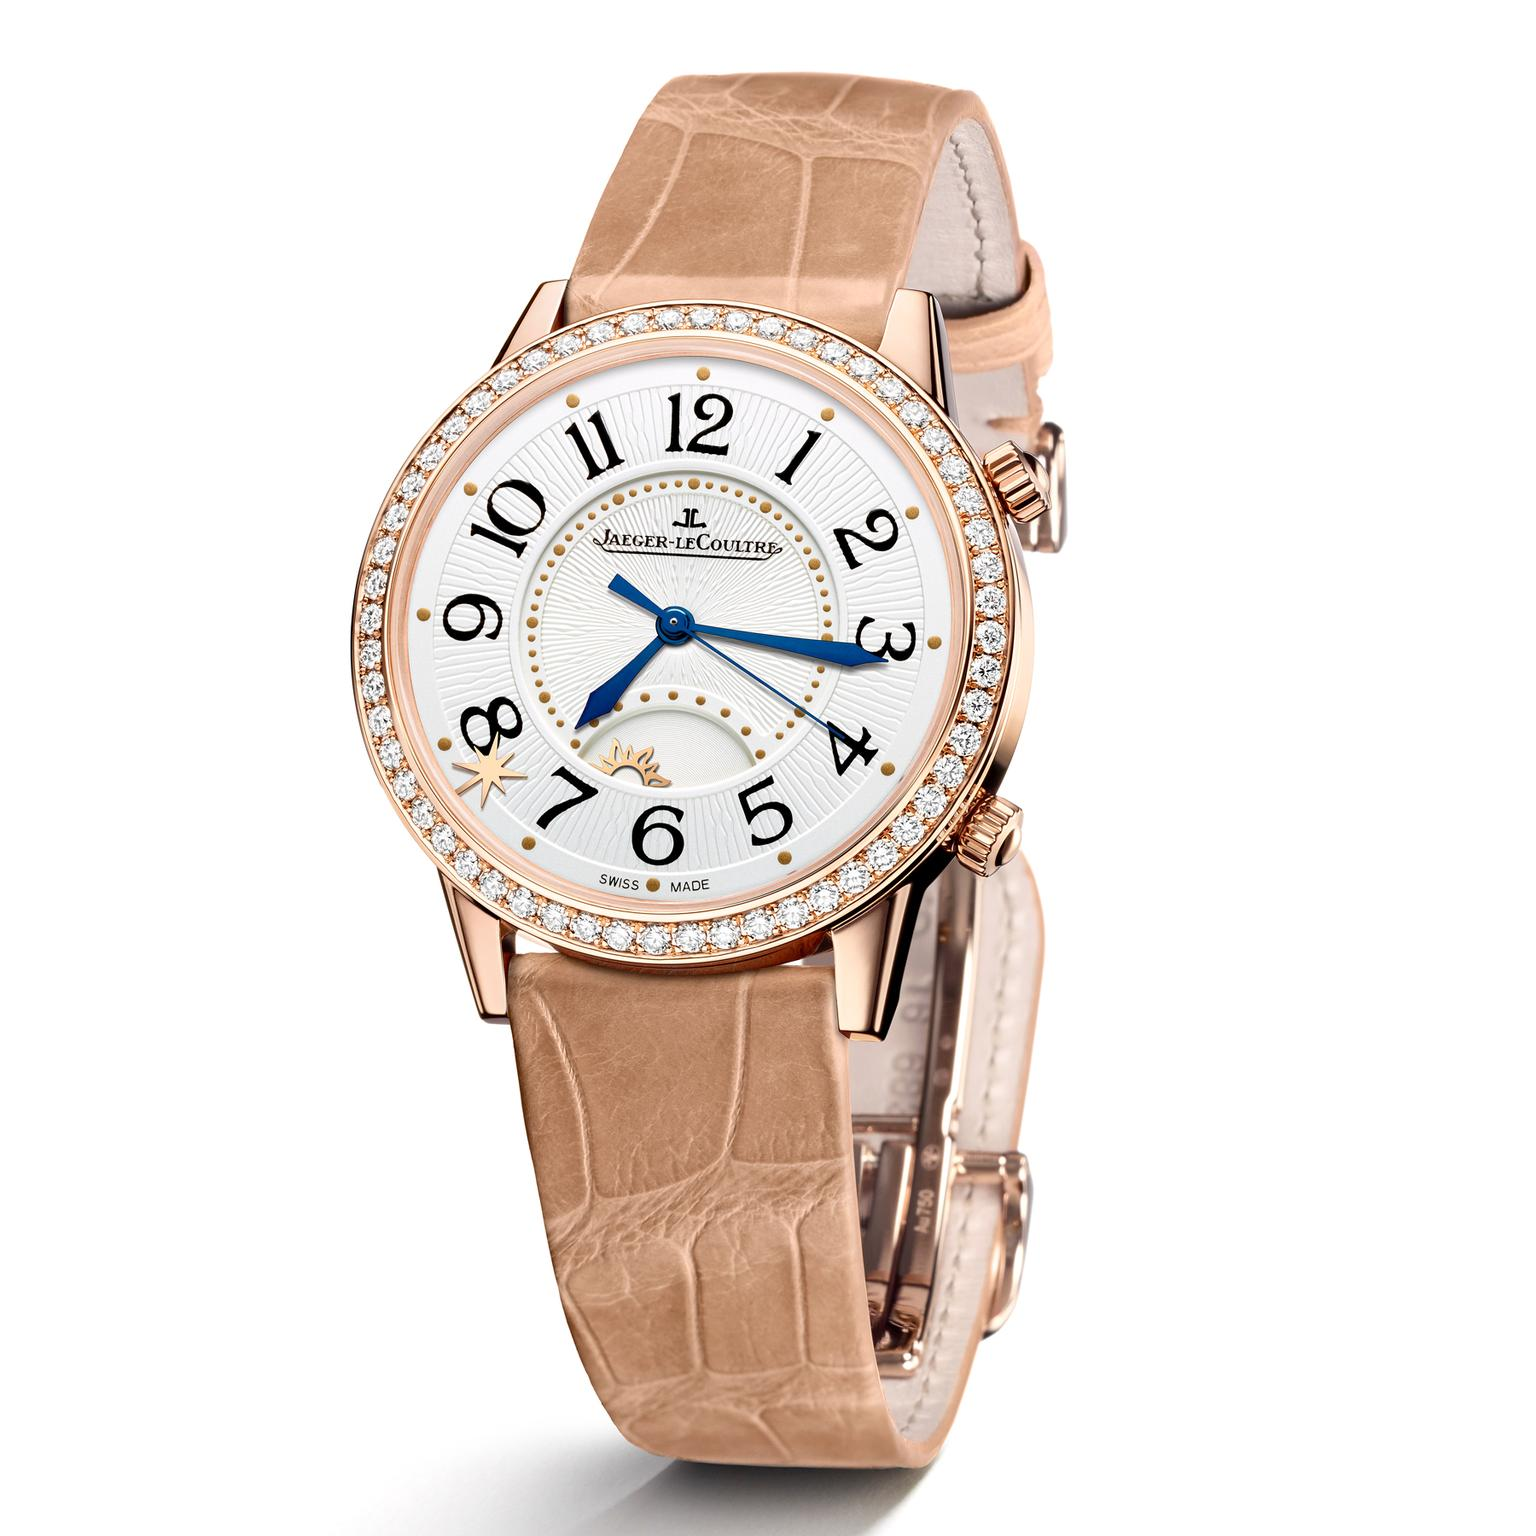 Jaeger-LeCoultre Rendez-Vous Sonatina Large in pink gold